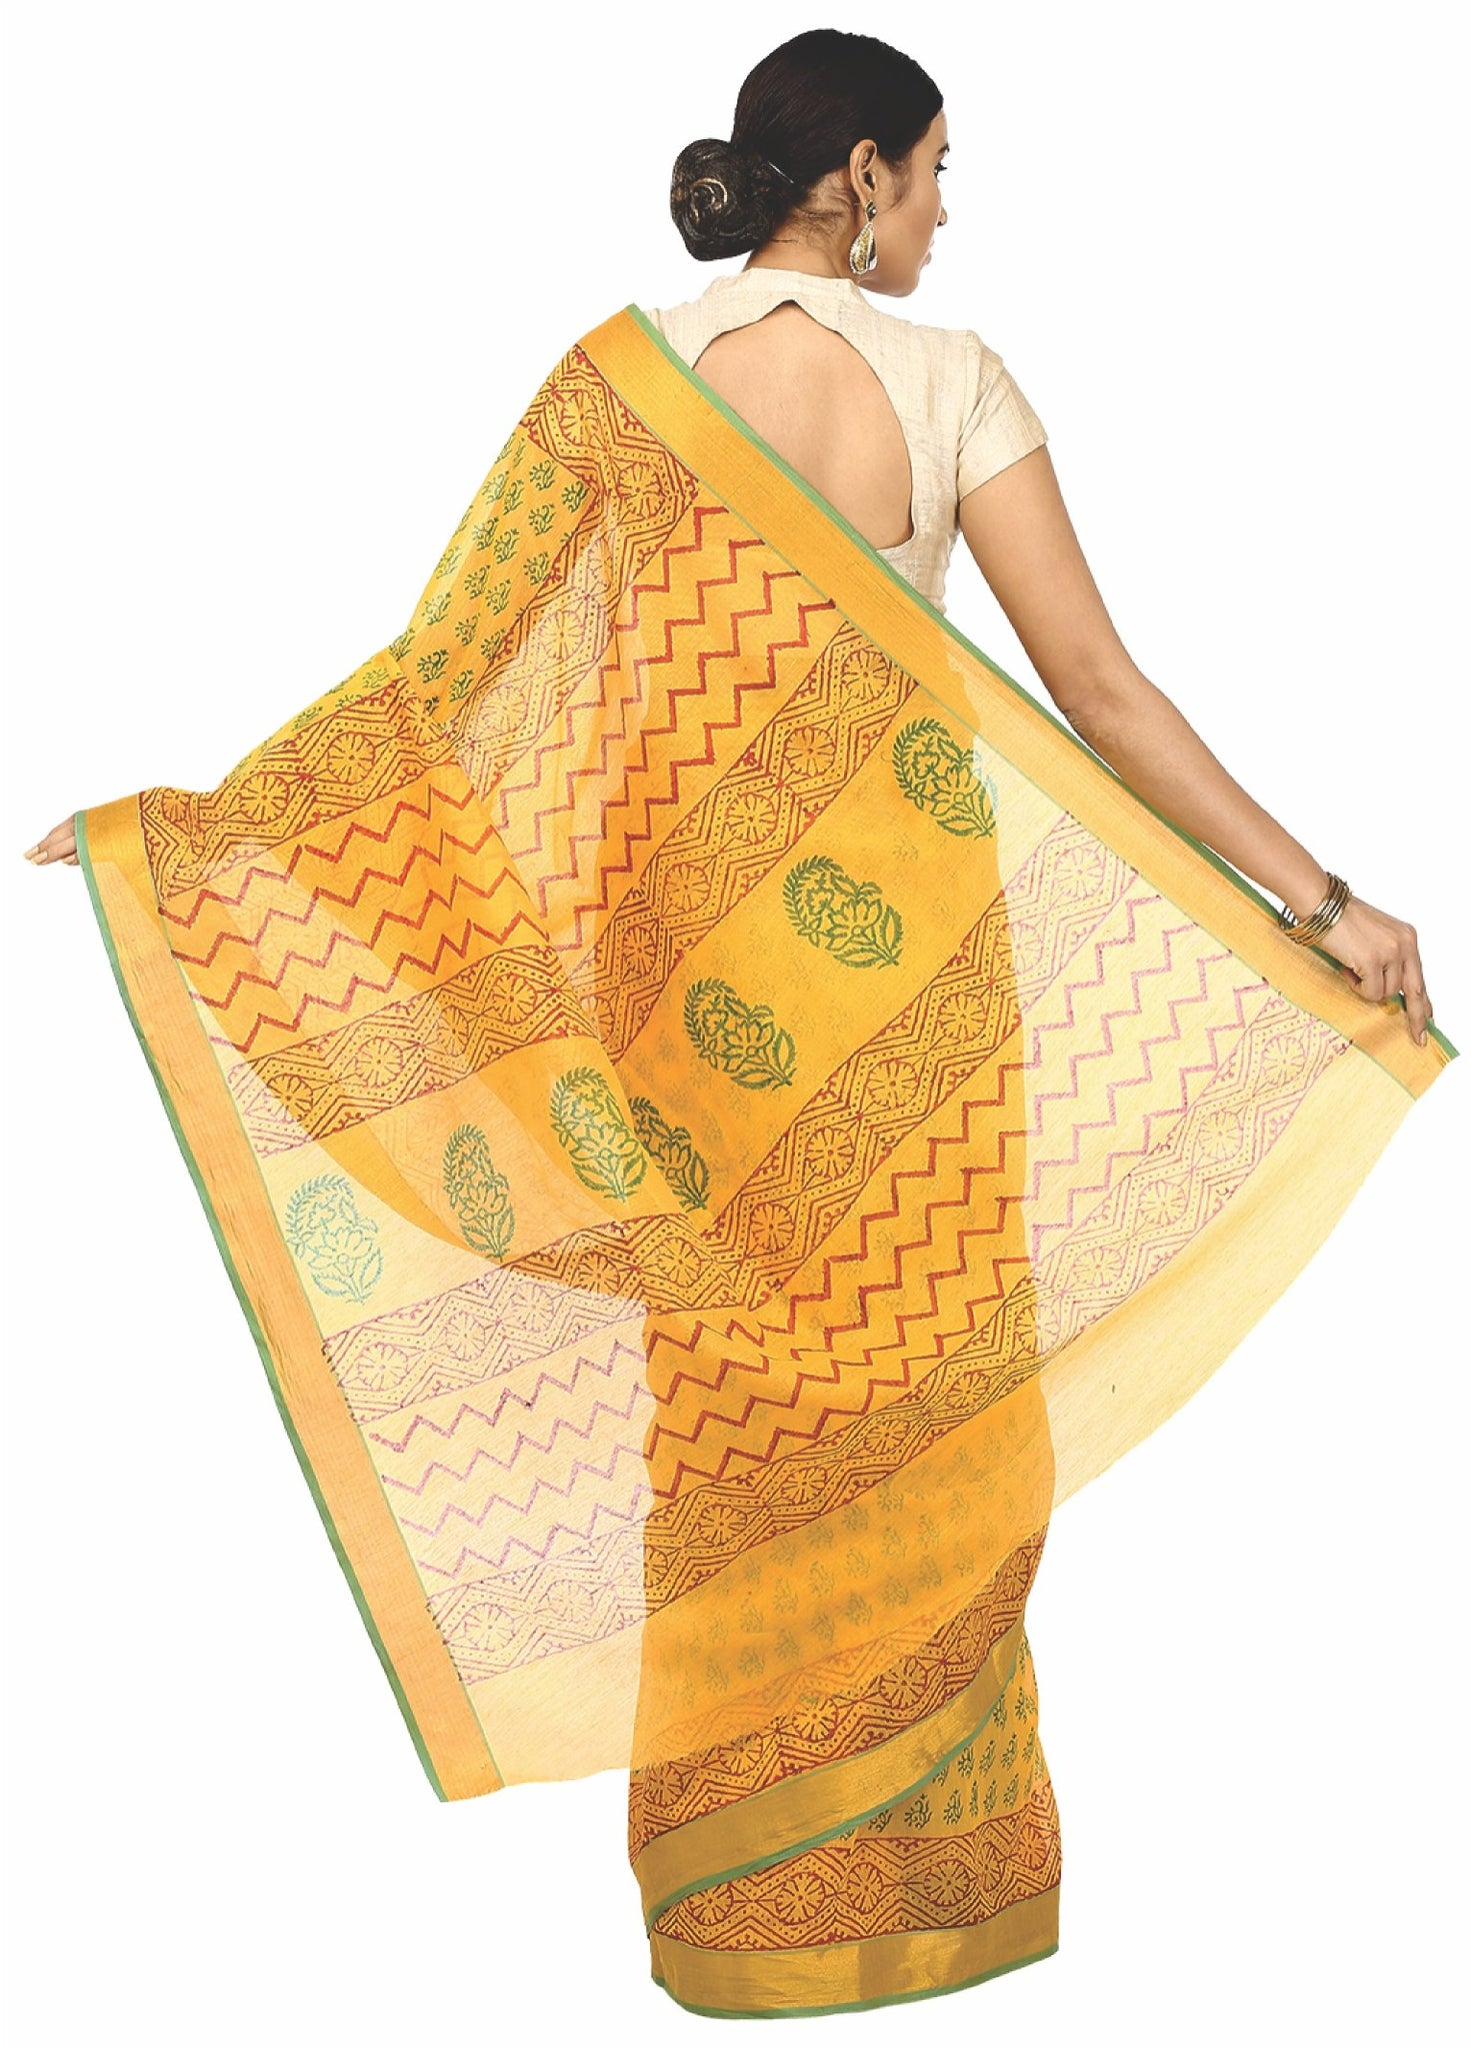 Yellow Sanganeri Hand Block Print Cotton Kota Doria Supernet Handcrafted Saree-Saree-Kalakari India-RDSNSA0014-Geographical Indication, Hand Blocks, Hand Crafted, Heritage Prints, Kota Doria, Sanganeri, Sarees, Sustainable Fabrics-[Linen,Ethnic,wear,Fashionista,Handloom,Handicraft,Indigo,blockprint,block,print,Cotton,Chanderi,Blue, latest,classy,party,bollywood,trendy,summer,style,traditional,formal,elegant,unique,style,hand,block,print, dabu,booti,gift,present,glamorous,affordable,collectible,S